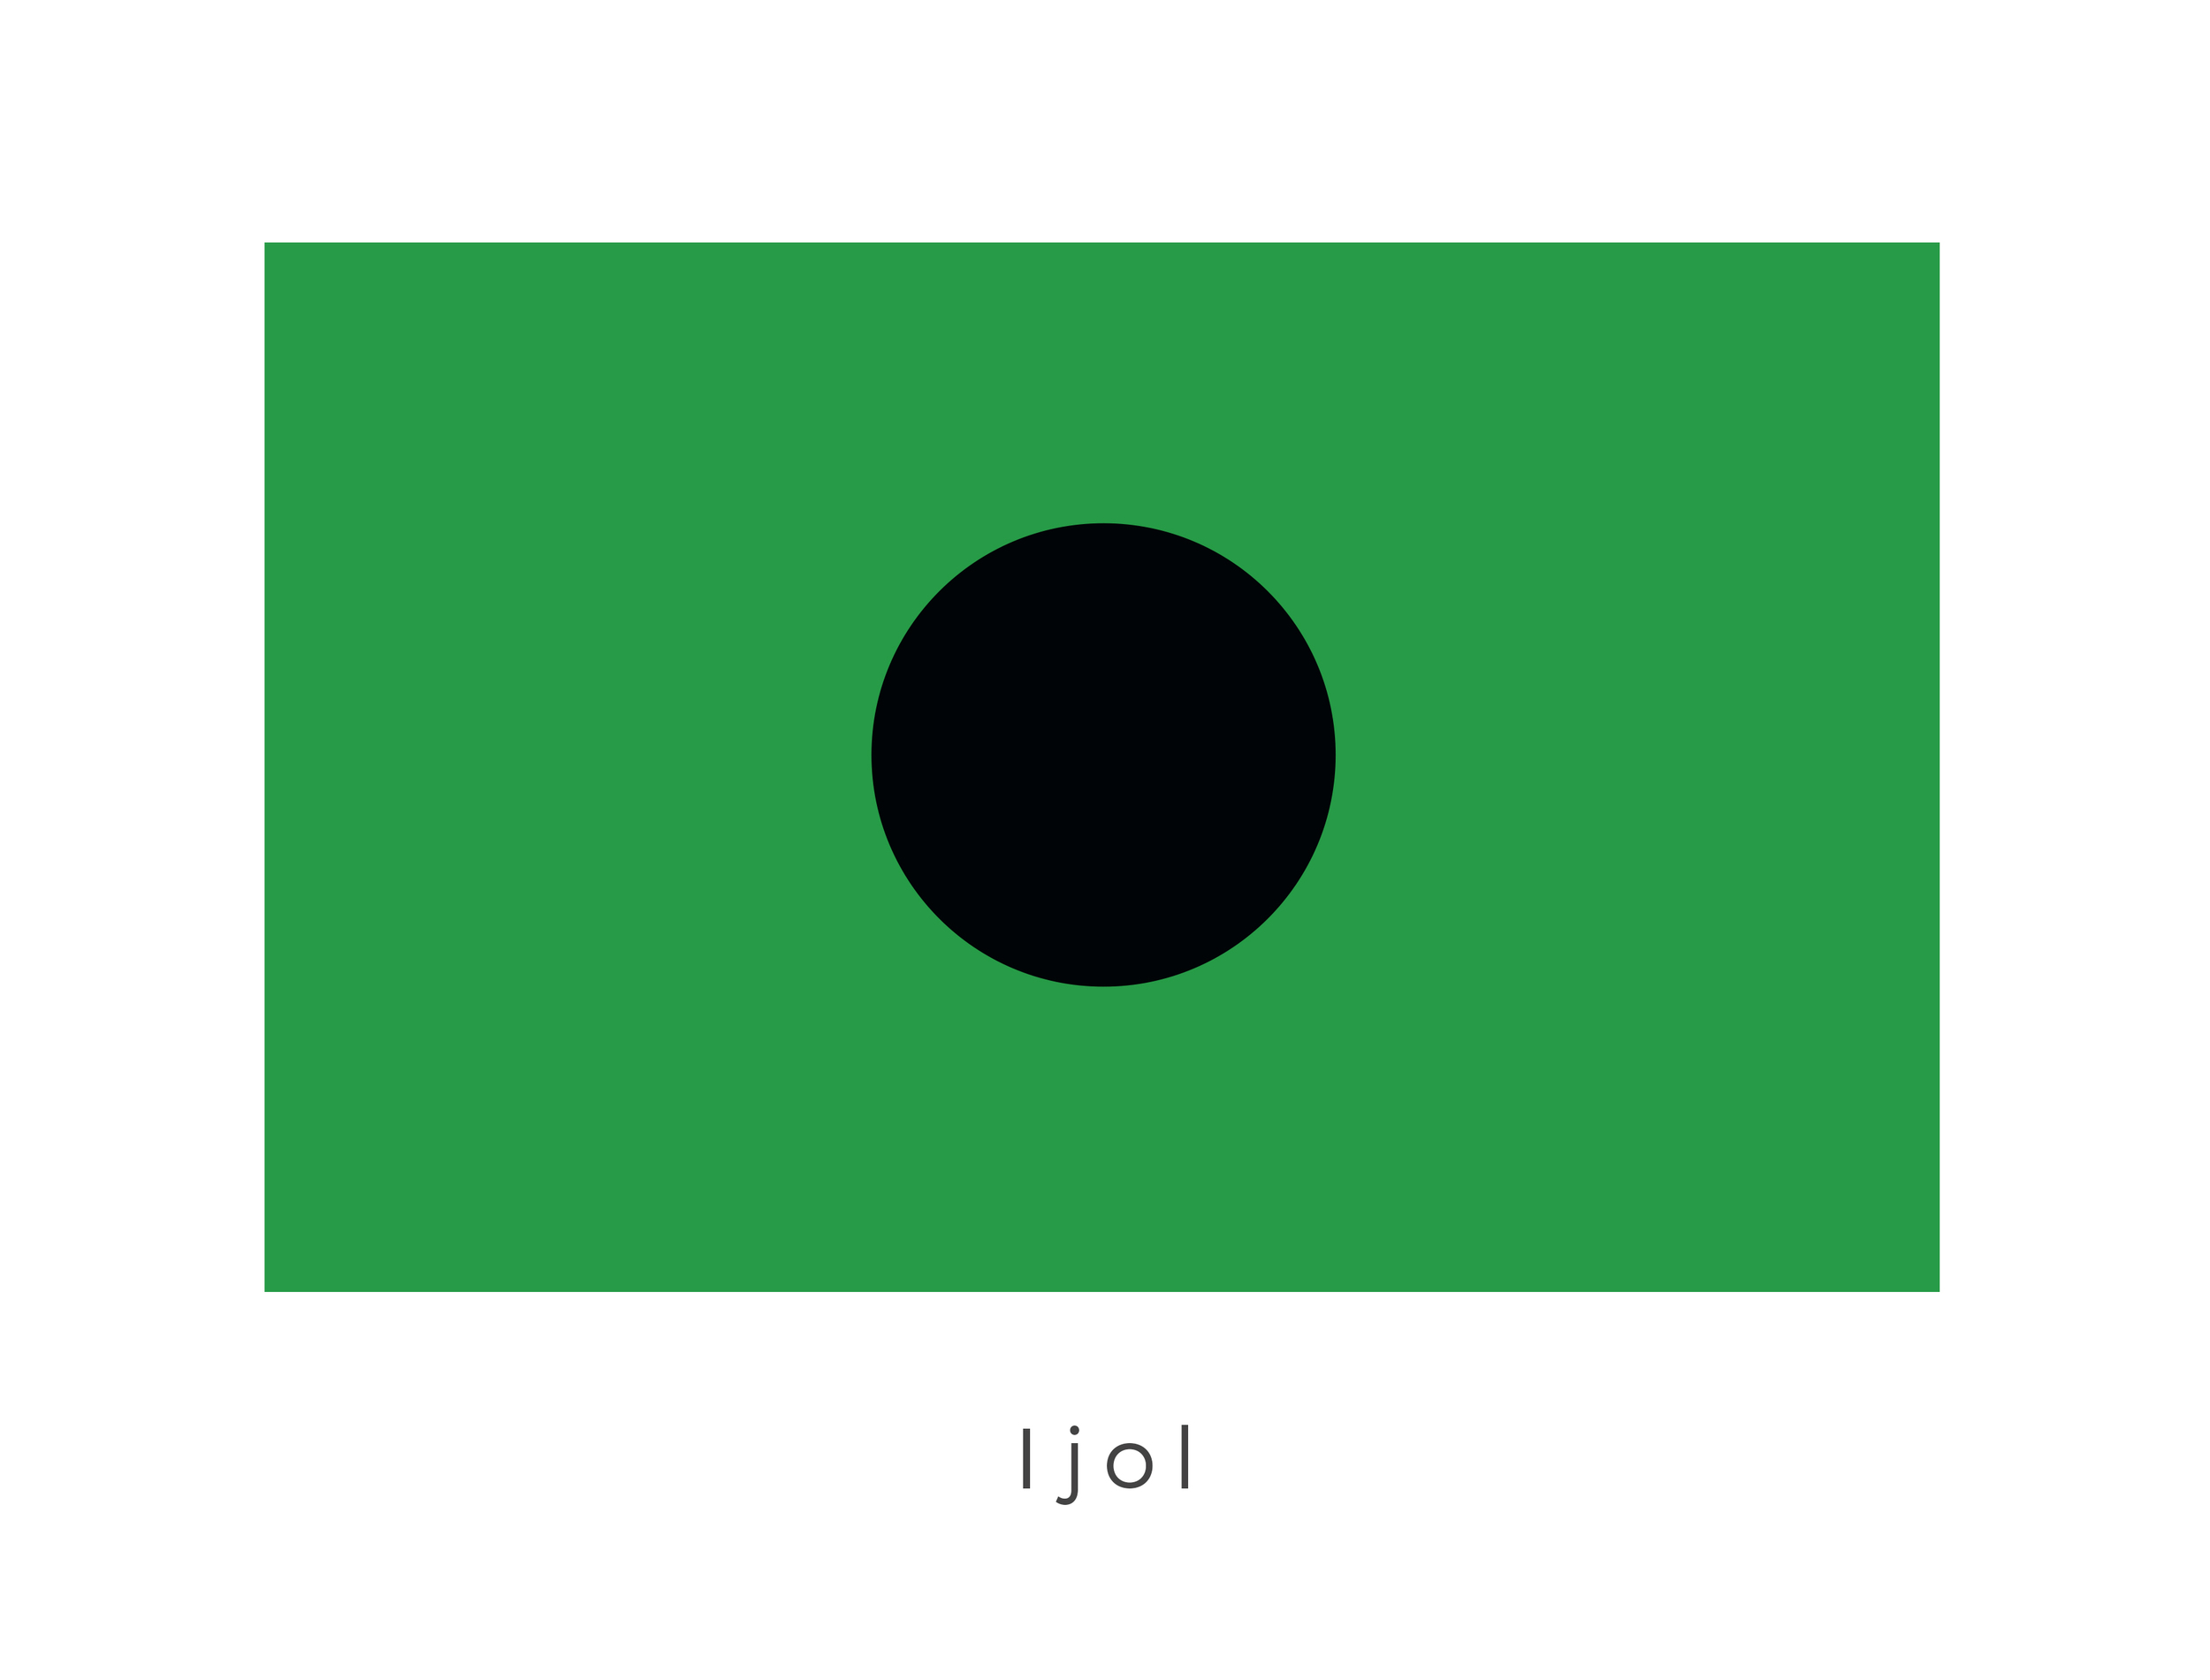 Ijol  was the fourth planet in the Tirahnn system of the Inner Rim Territories. The black orb in the centre of a deep green signifies the planets inhospitable terrain which was made up of mostly toxic gases.